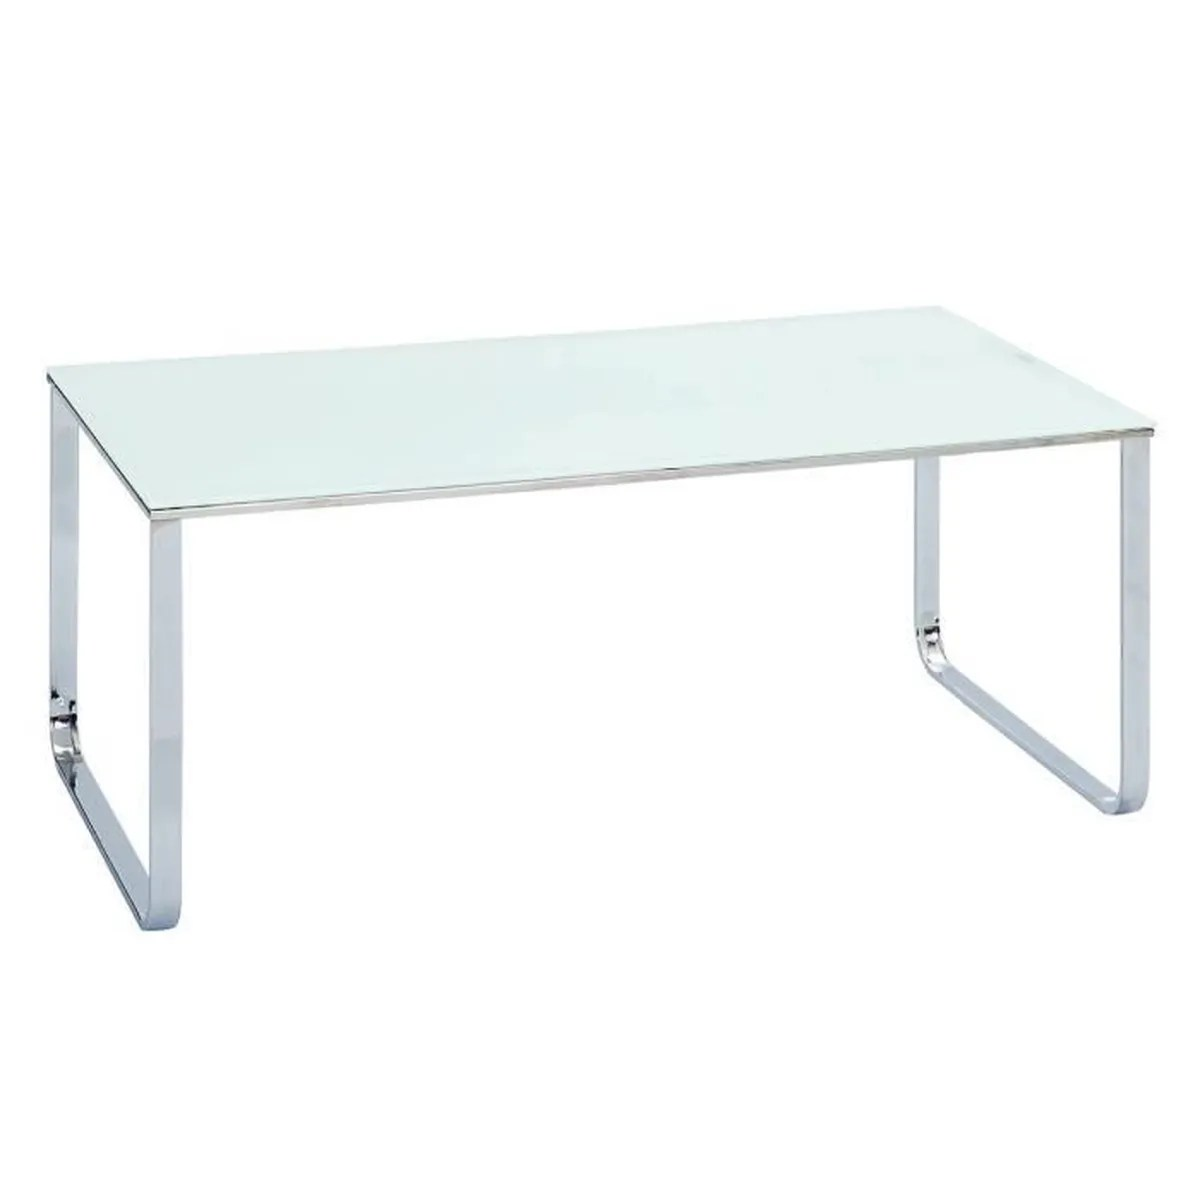 Table Blanche Rectangulaire Samira Table Basse Rectangulaire Blanche Achat Vente